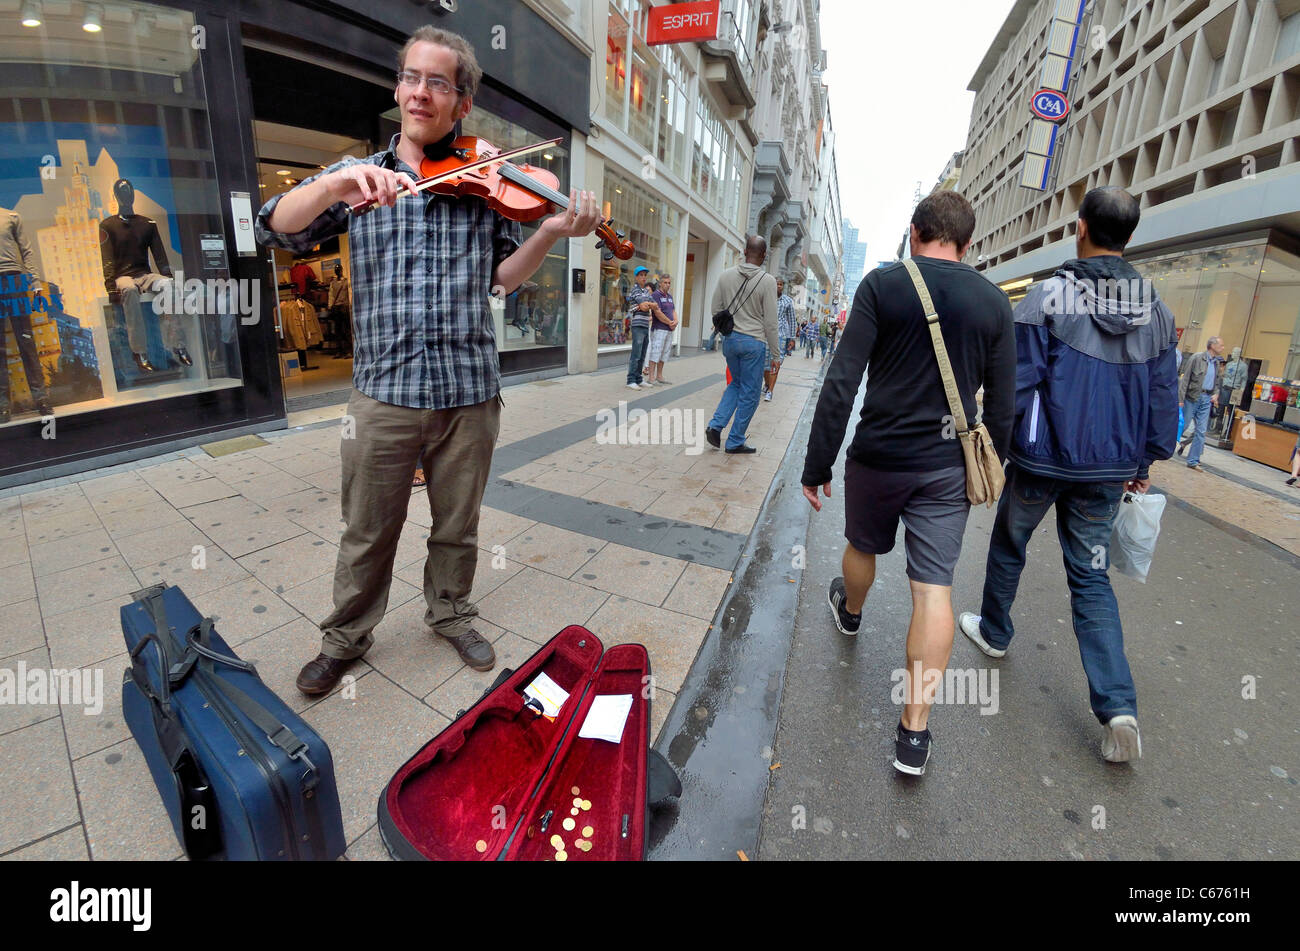 Brussels, Belgium. Busker in street playing the violin - Stock Image